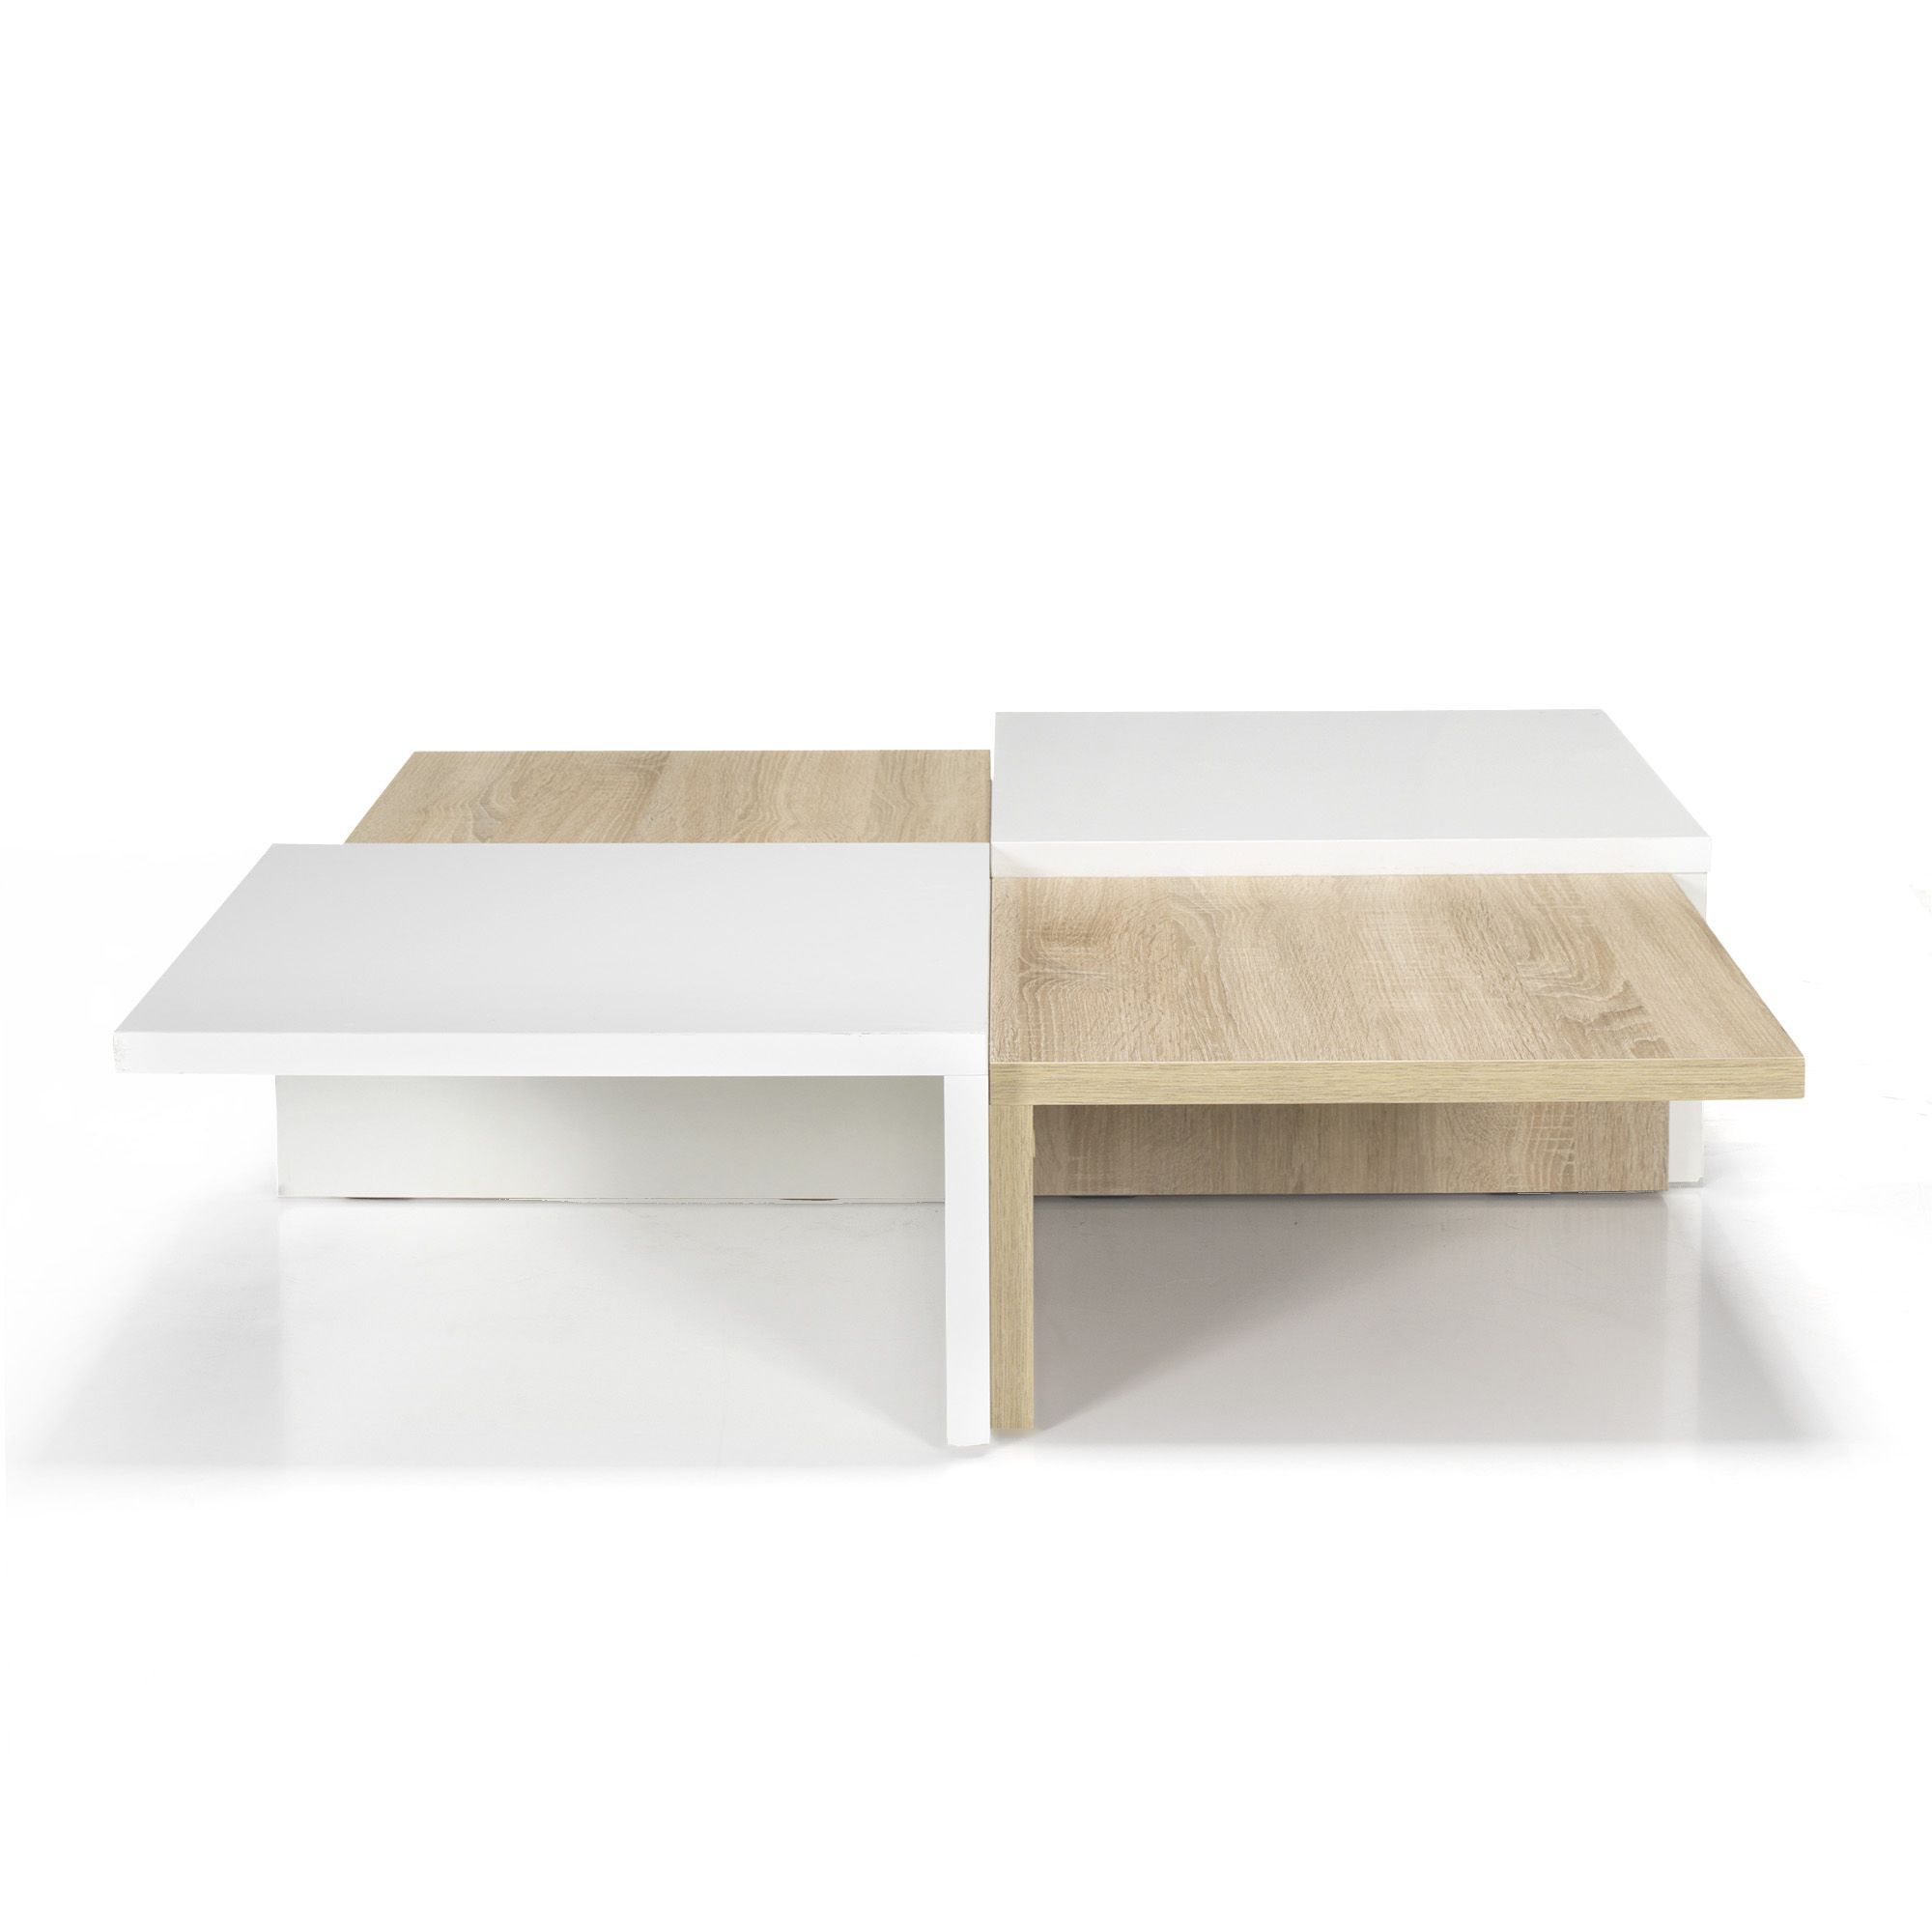 Table Basse Carrée Design Table Basse Carrée Design Scandinave Blanc Naturel